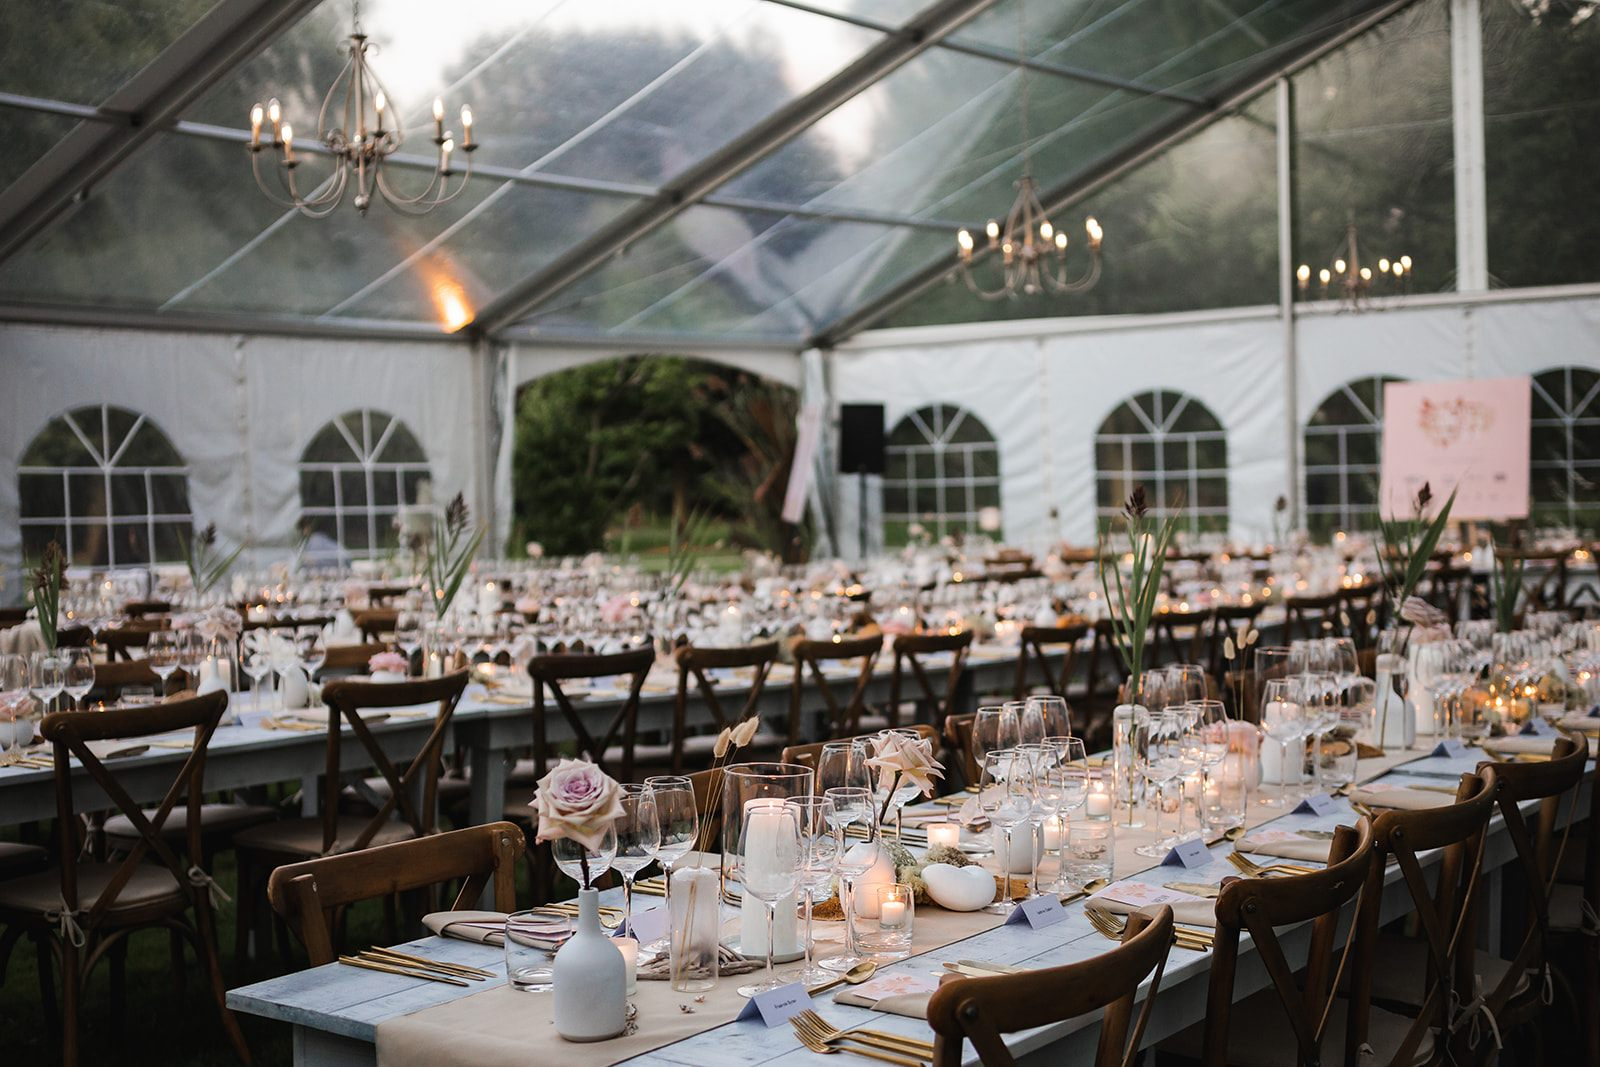 A Tent is wonder place for an event!